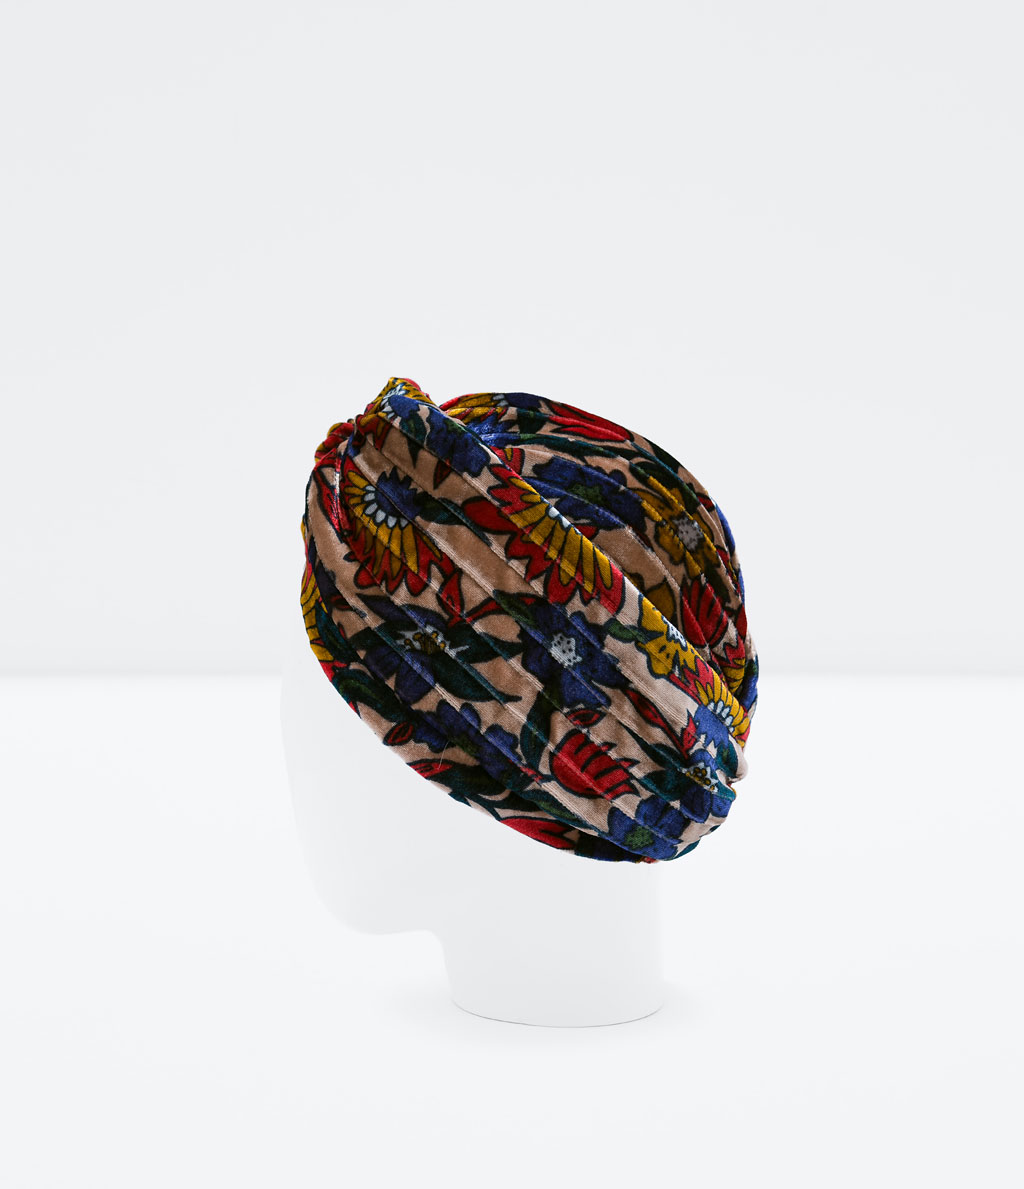 http://www.zara.com/uk/en/woman/accessories/accessories/velvet-turban-c271008p2306023.html